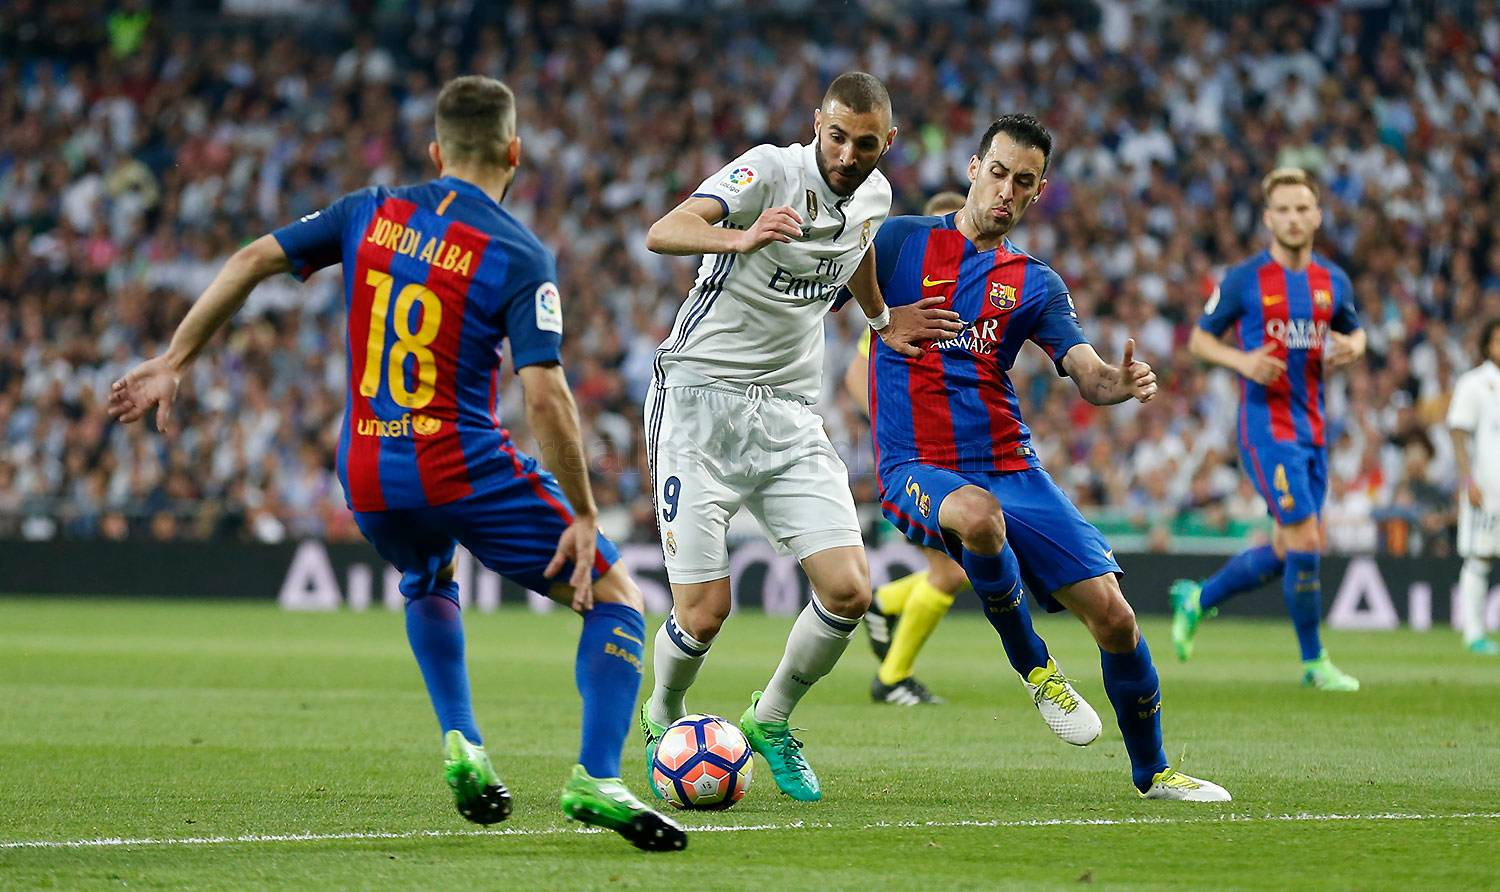 Real Madrid - Real Madrid - Barcelona - 23-04-2017